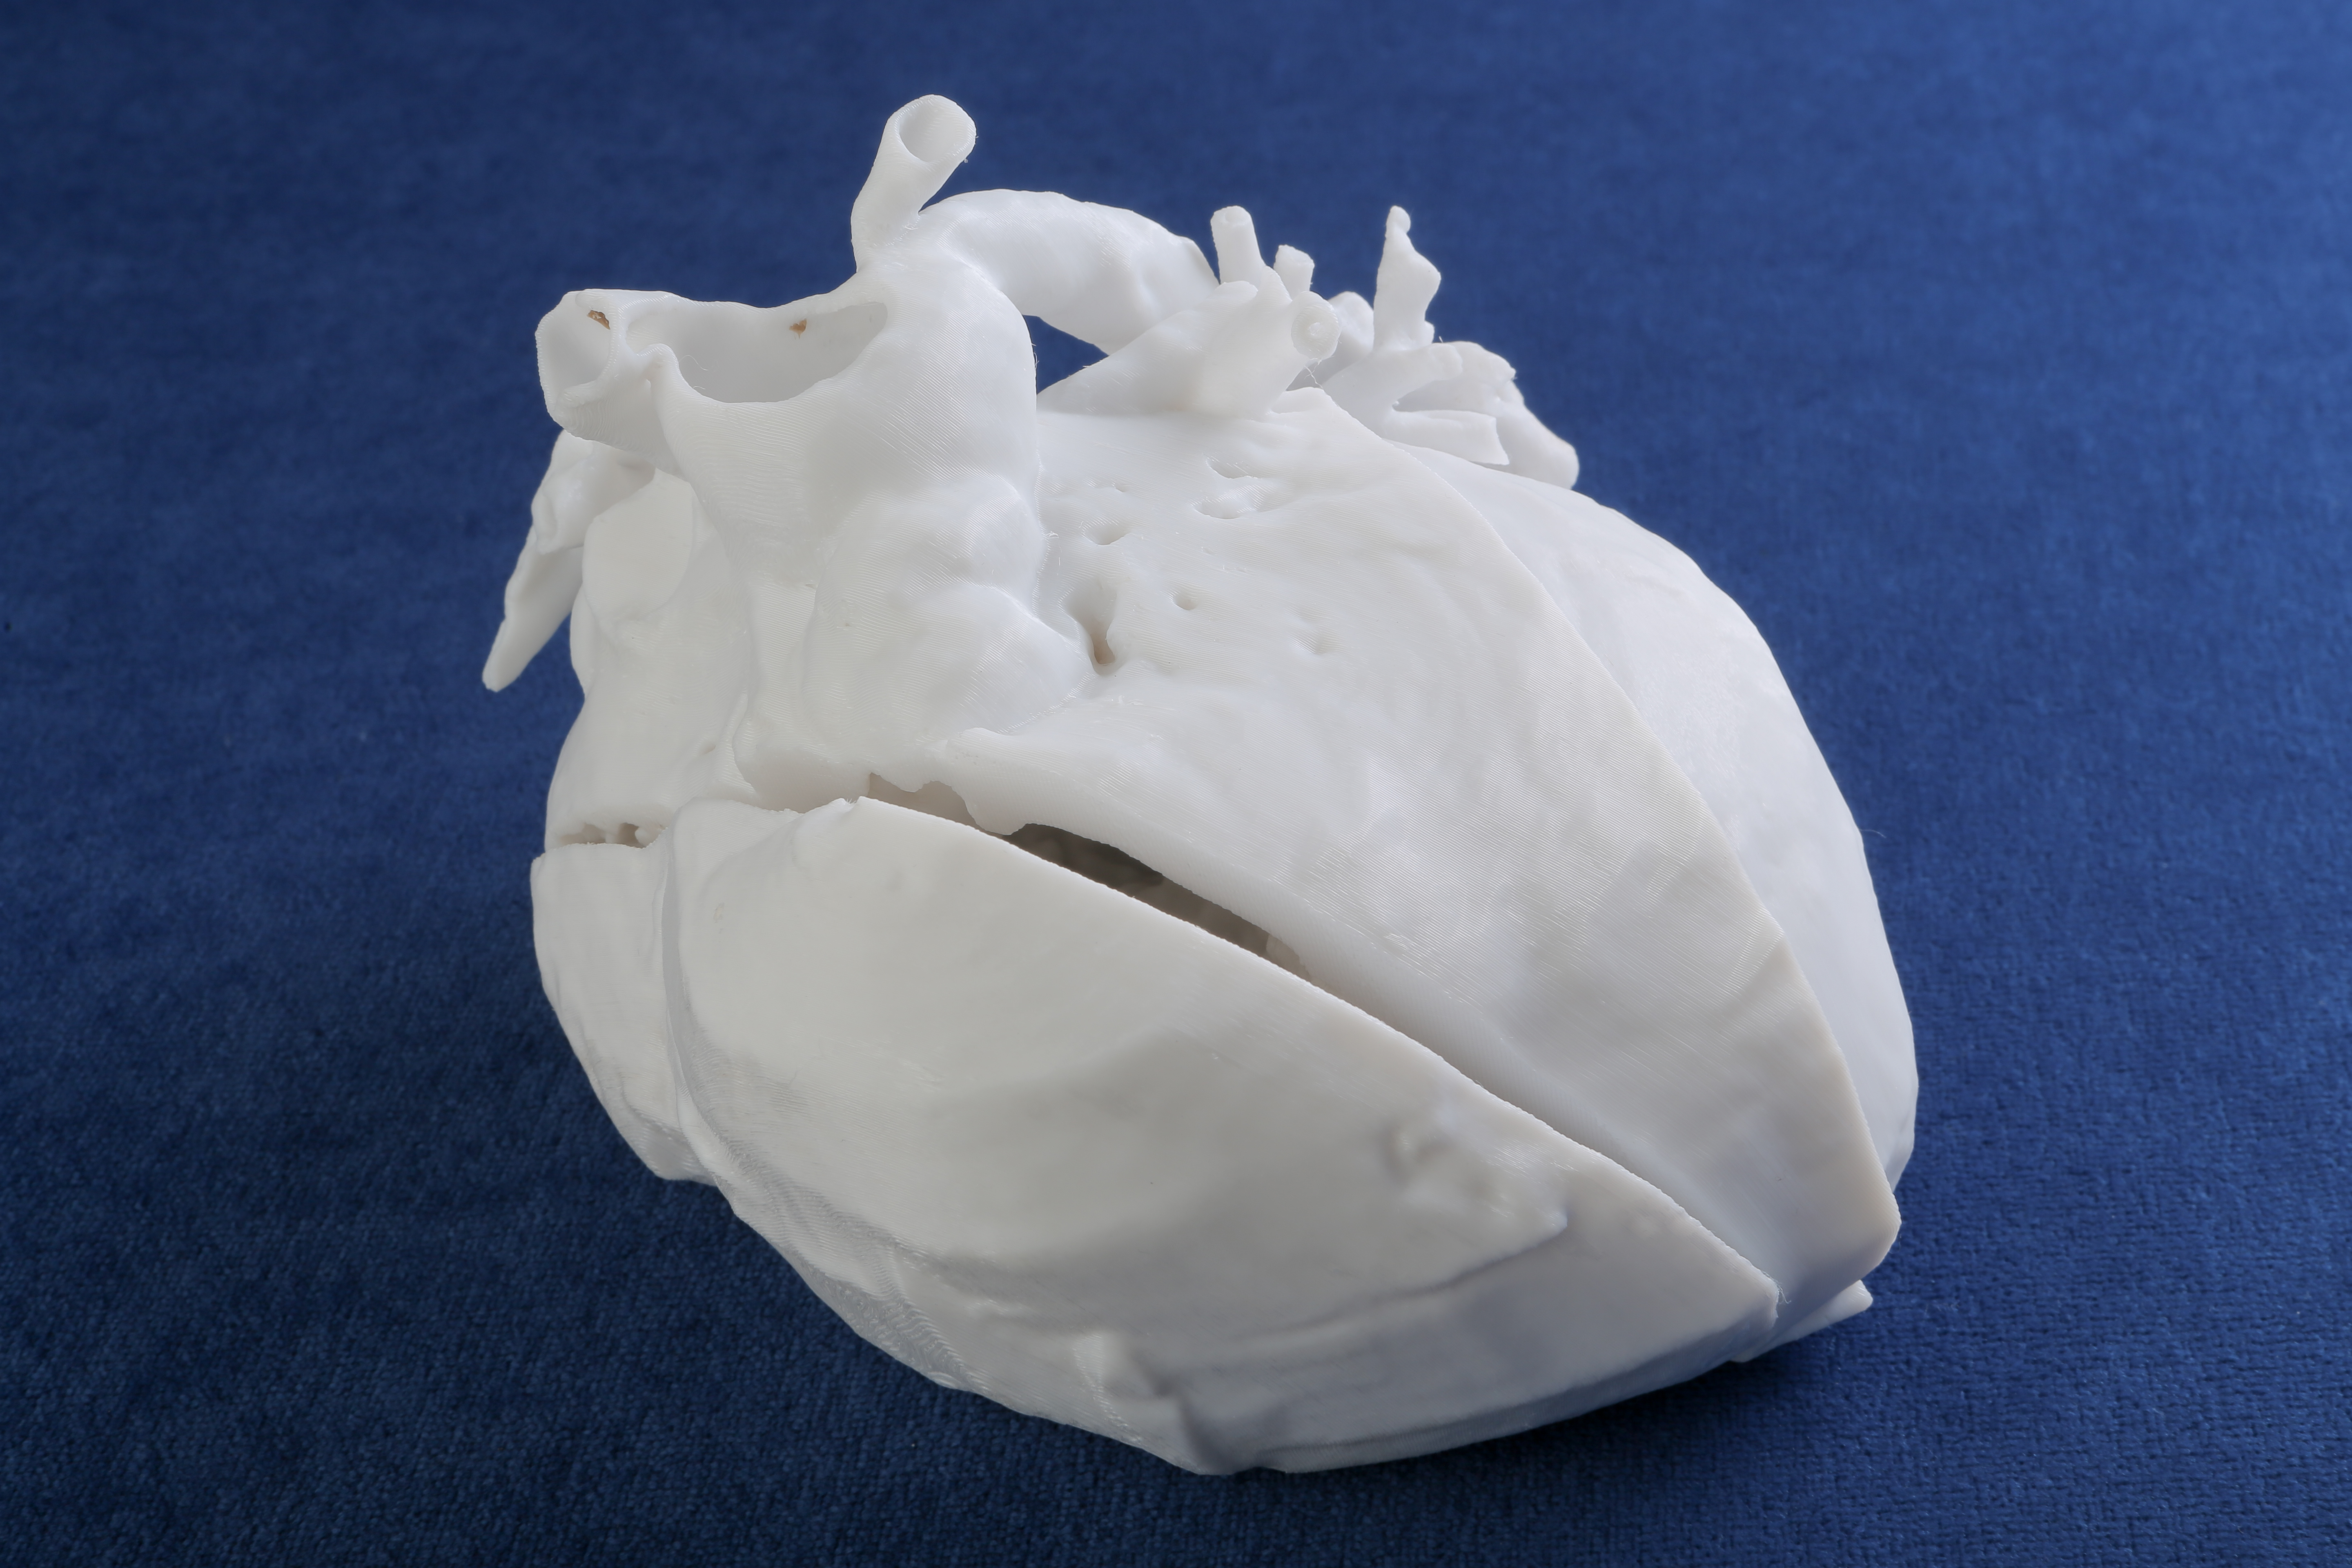 A close-up of a 3D plastic model of a heart shows blood vessels and the heart chambers.